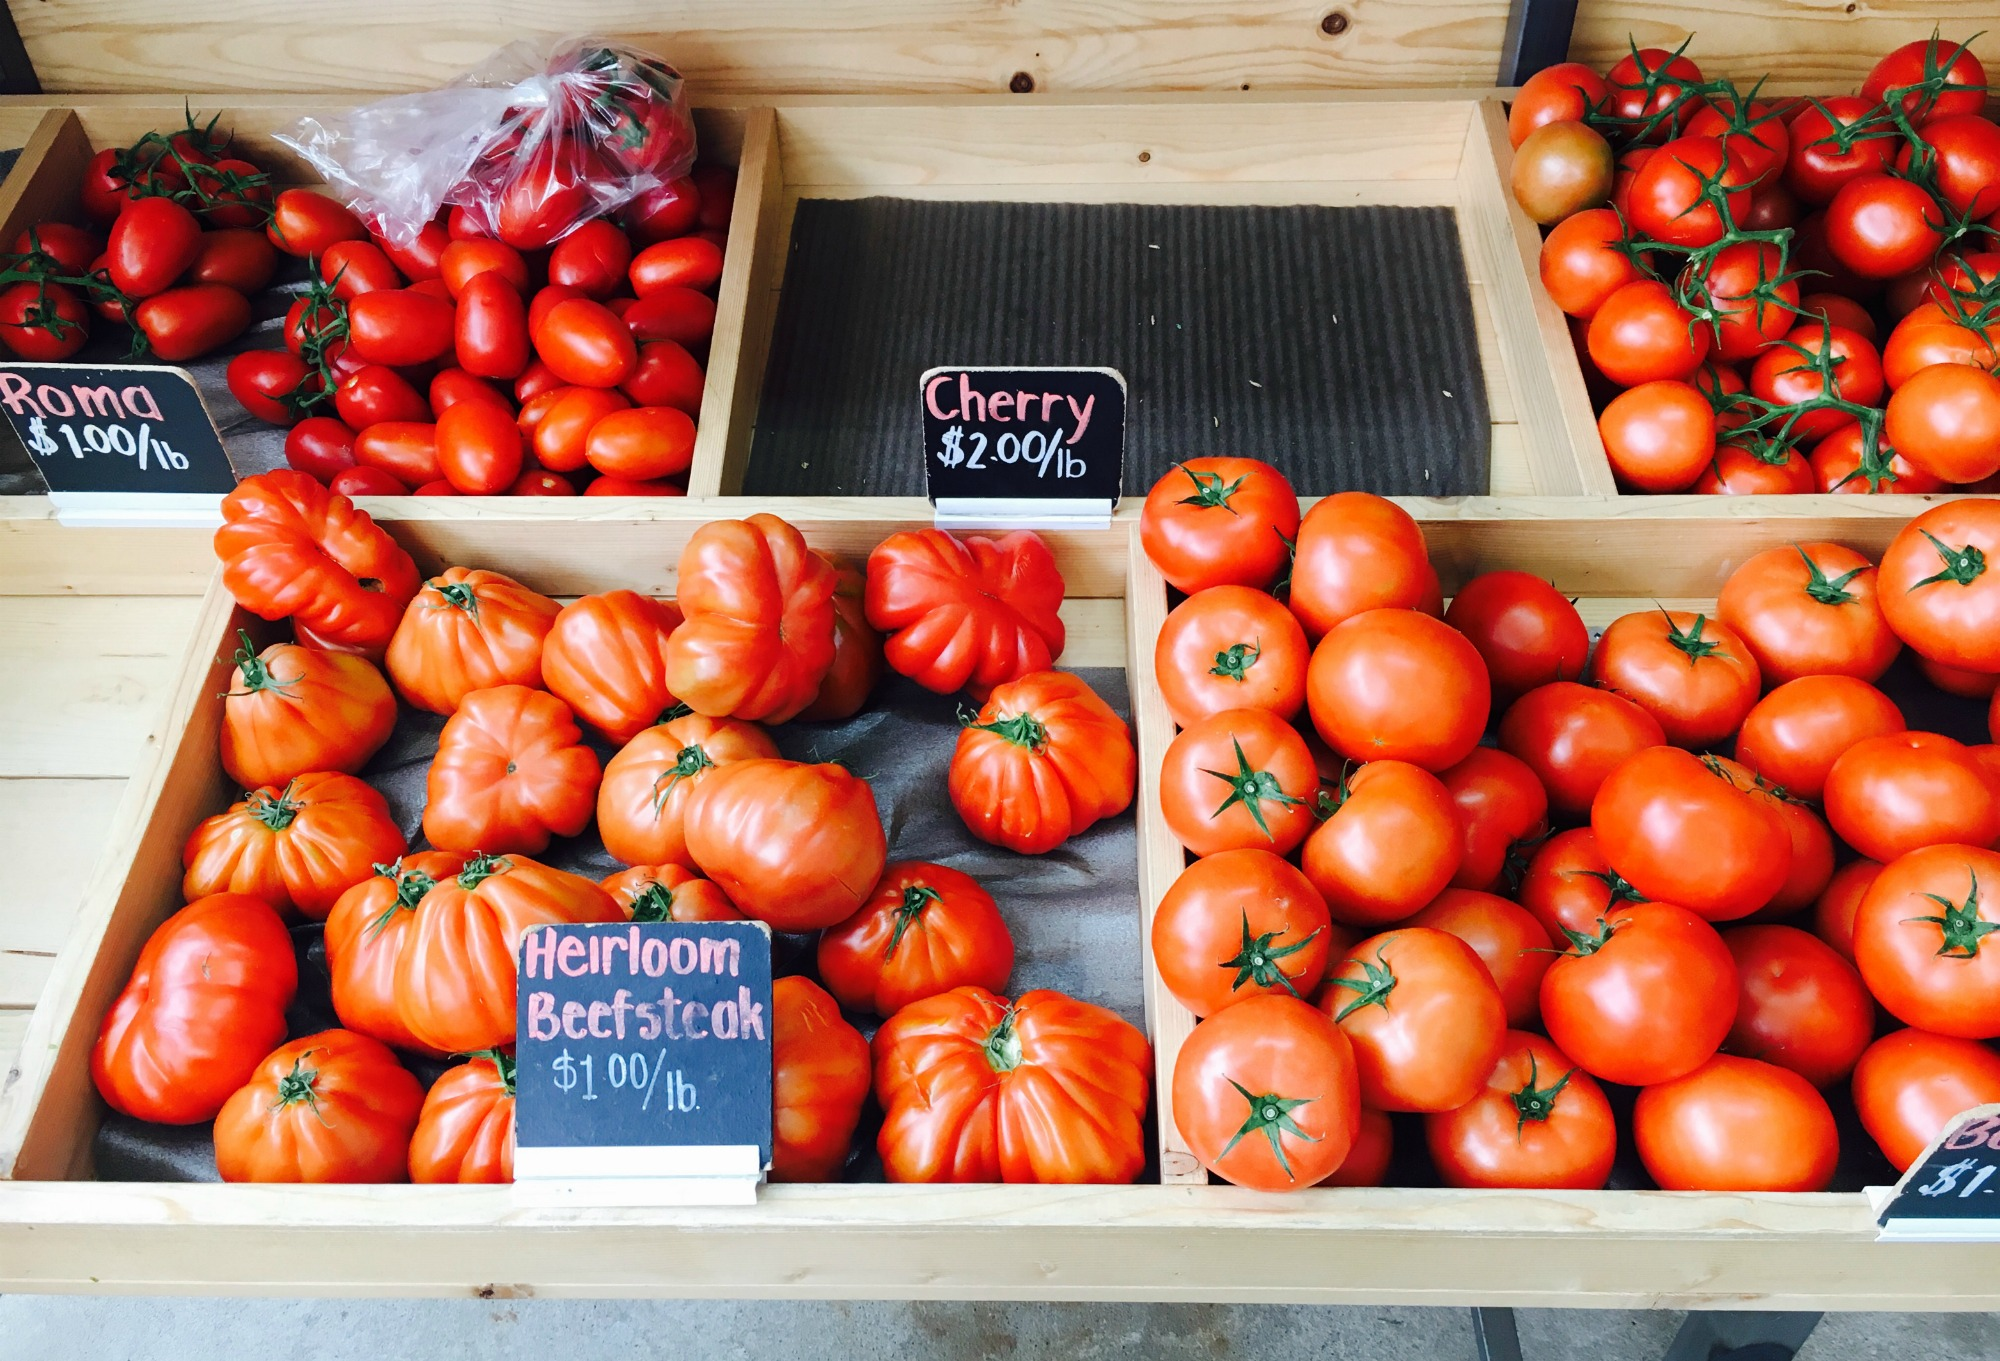 Redcliff tomatoes